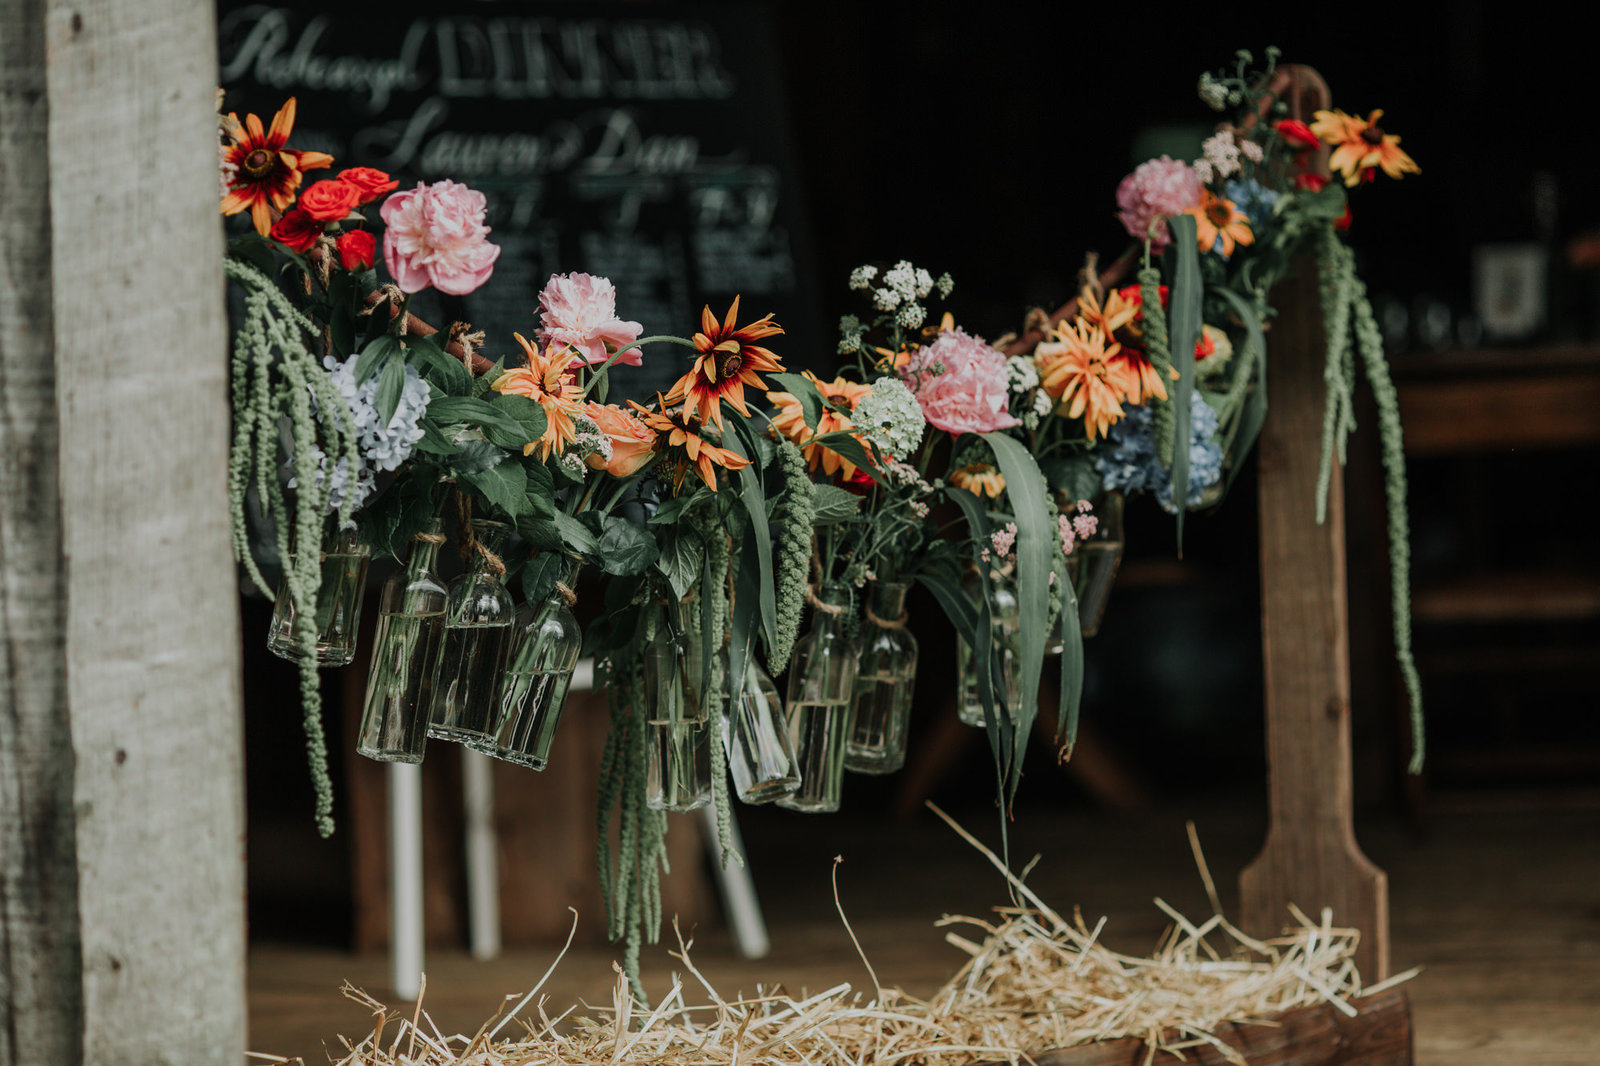 wedding flower decor by wild thyme flowers in centerville delaware photographed at Hill Girt Farm in chadds ford PA